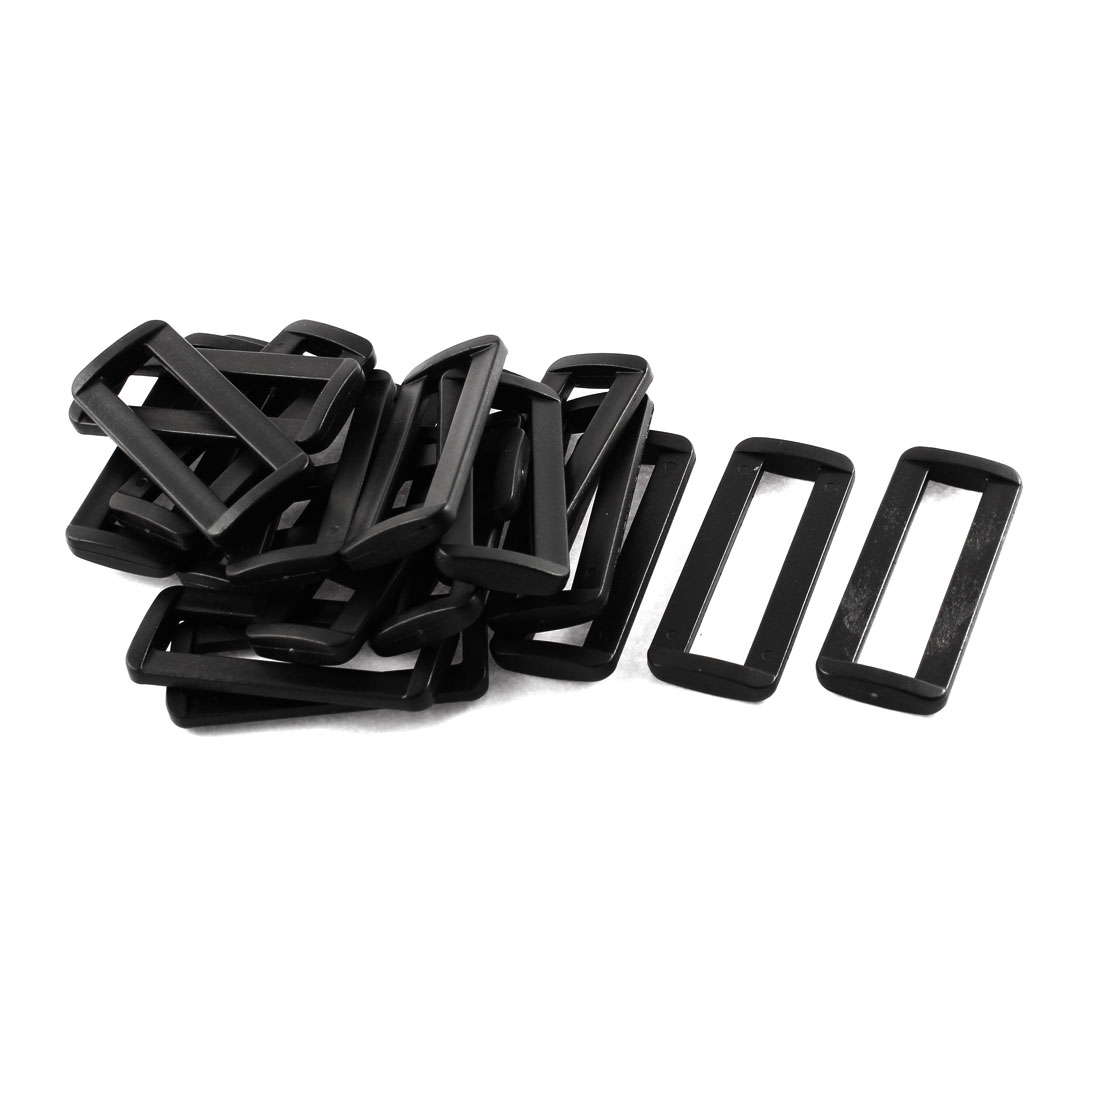 20pcs Black Plastic Bag Bar Slides Buckles for 50mm Webbing Strap